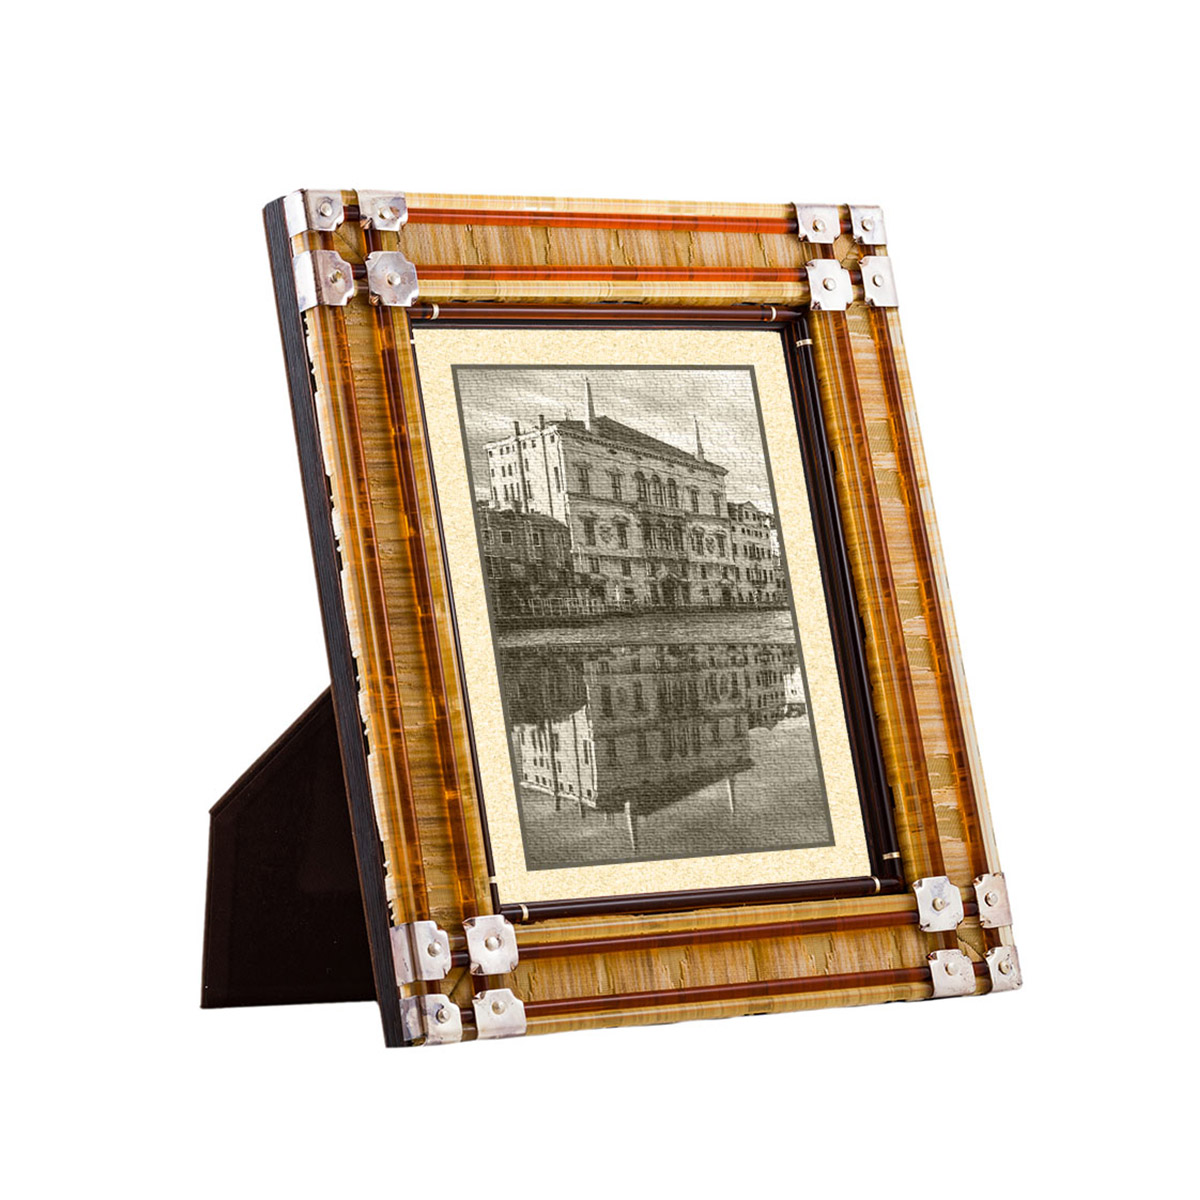 virginia_frame_amber_design_giberto_murano_venice_luxury_photograph